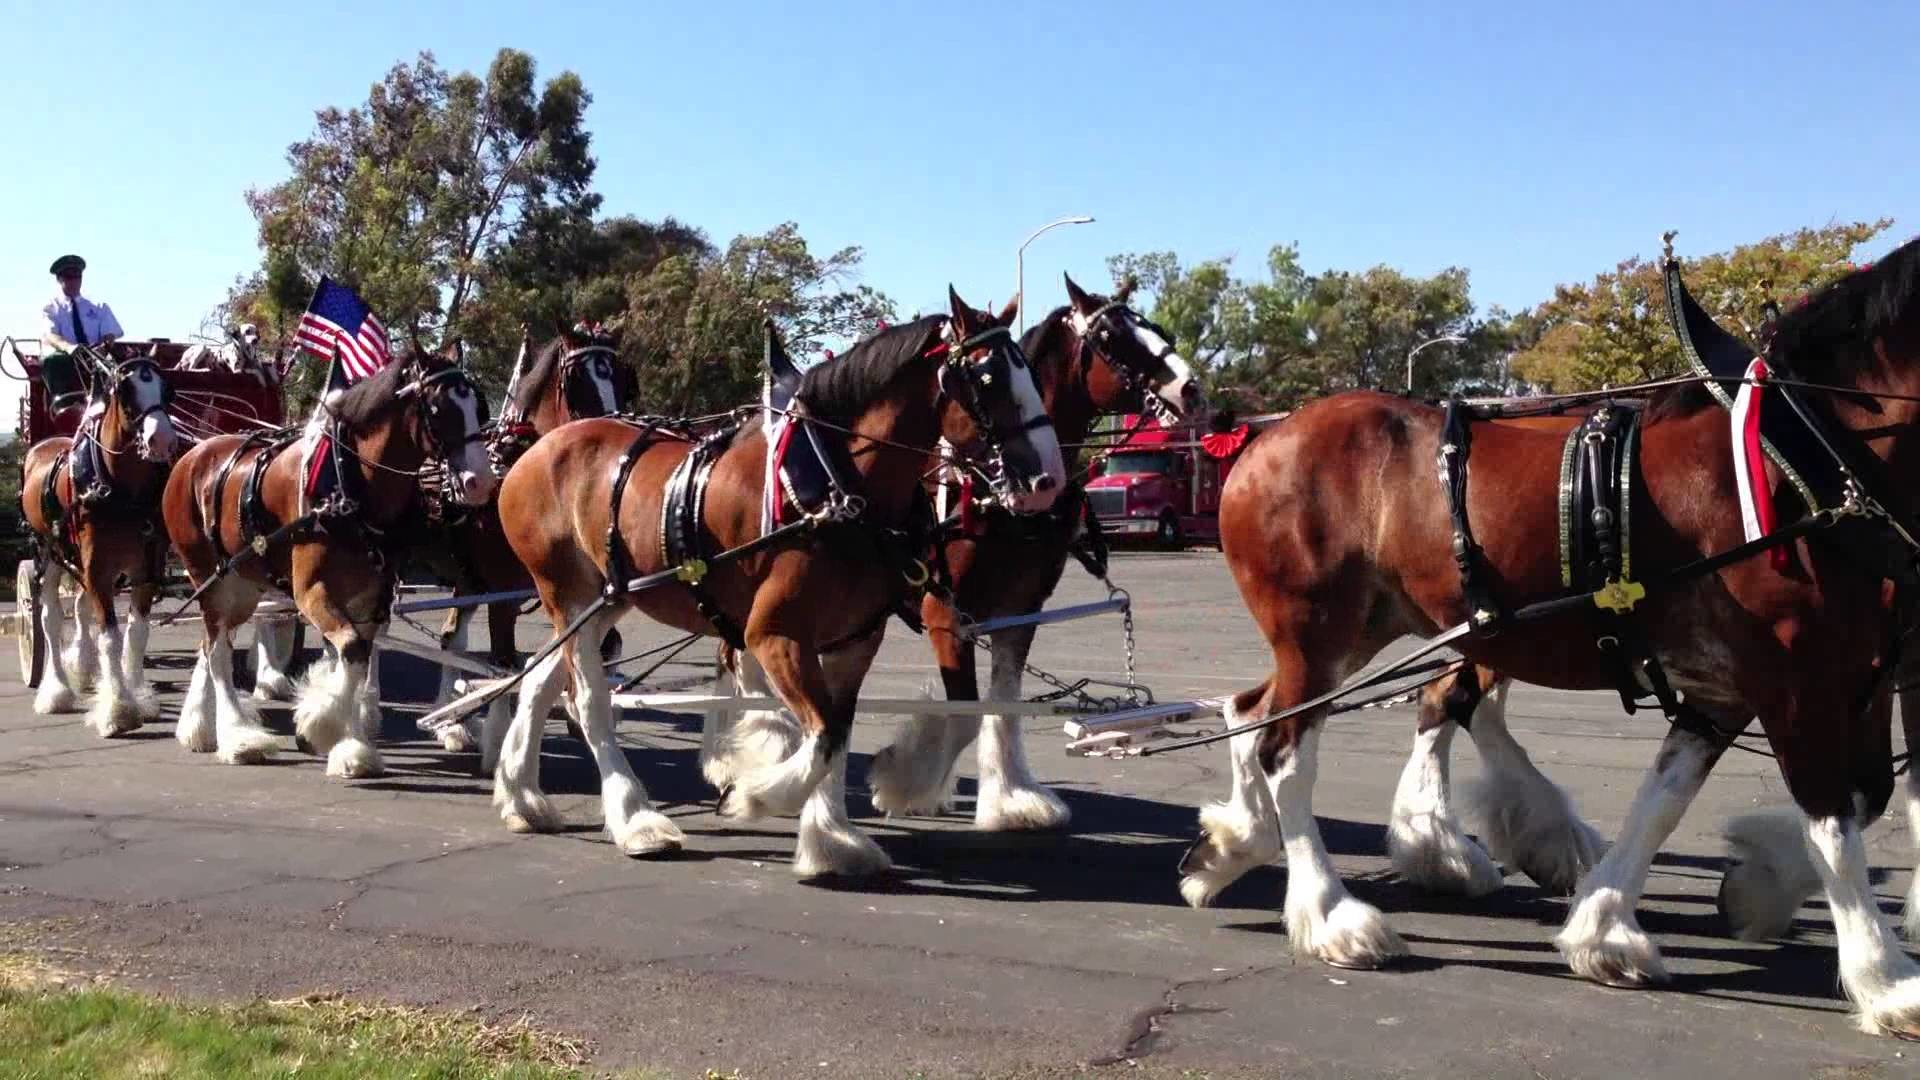 Res: 1920x1080, Budweiser Clydesdale Horses and Beer Carriage